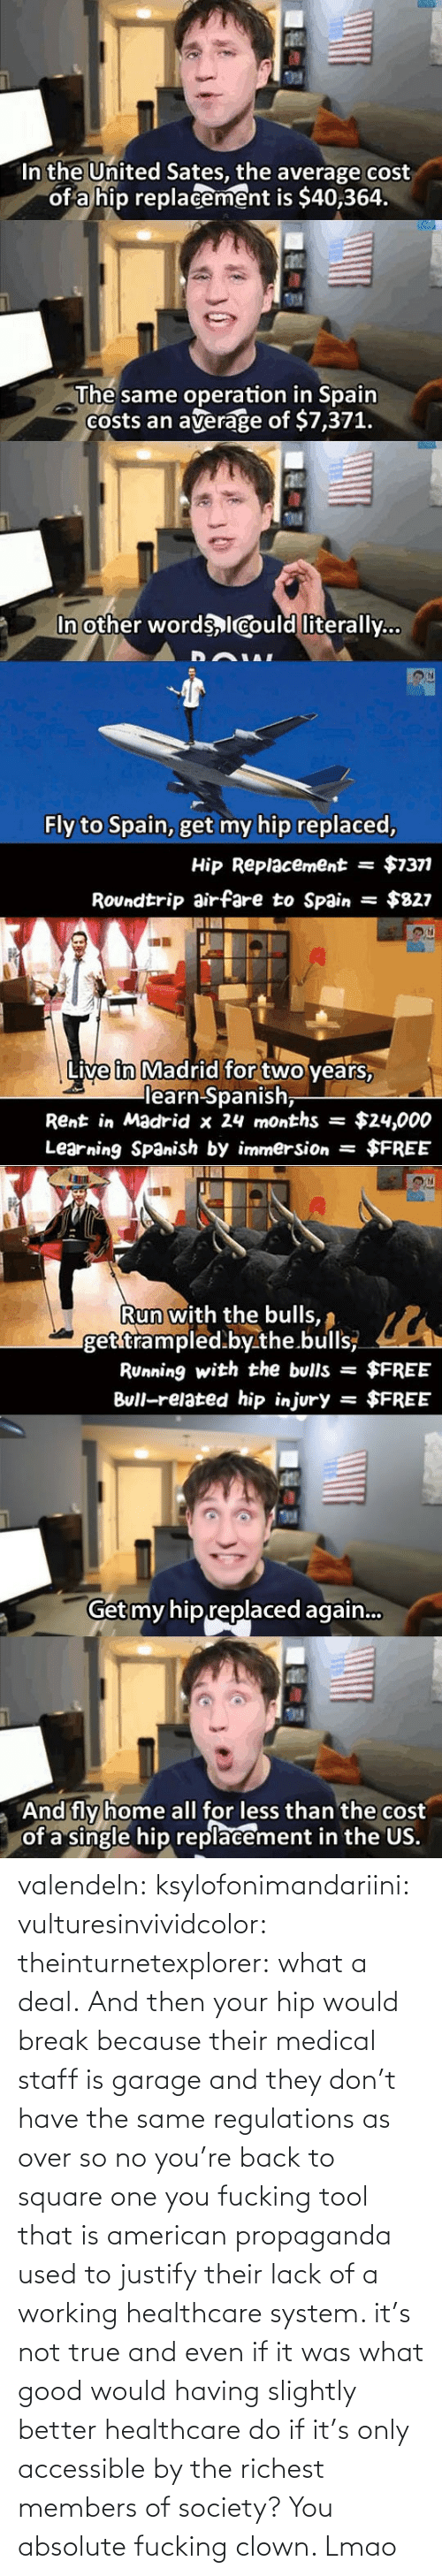 deal: valendeln:  ksylofonimandariini:  vulturesinvividcolor:   theinturnetexplorer:  what a deal.   And then your hip would break because their medical staff is garage and they don't have the same regulations as over so no you're back to square one you fucking tool    that is american propaganda used to justify their lack of a working healthcare system. it's not true and even if it was what good would having slightly better healthcare do if it's only accessible by the richest members of society?      You absolute fucking clown. Lmao